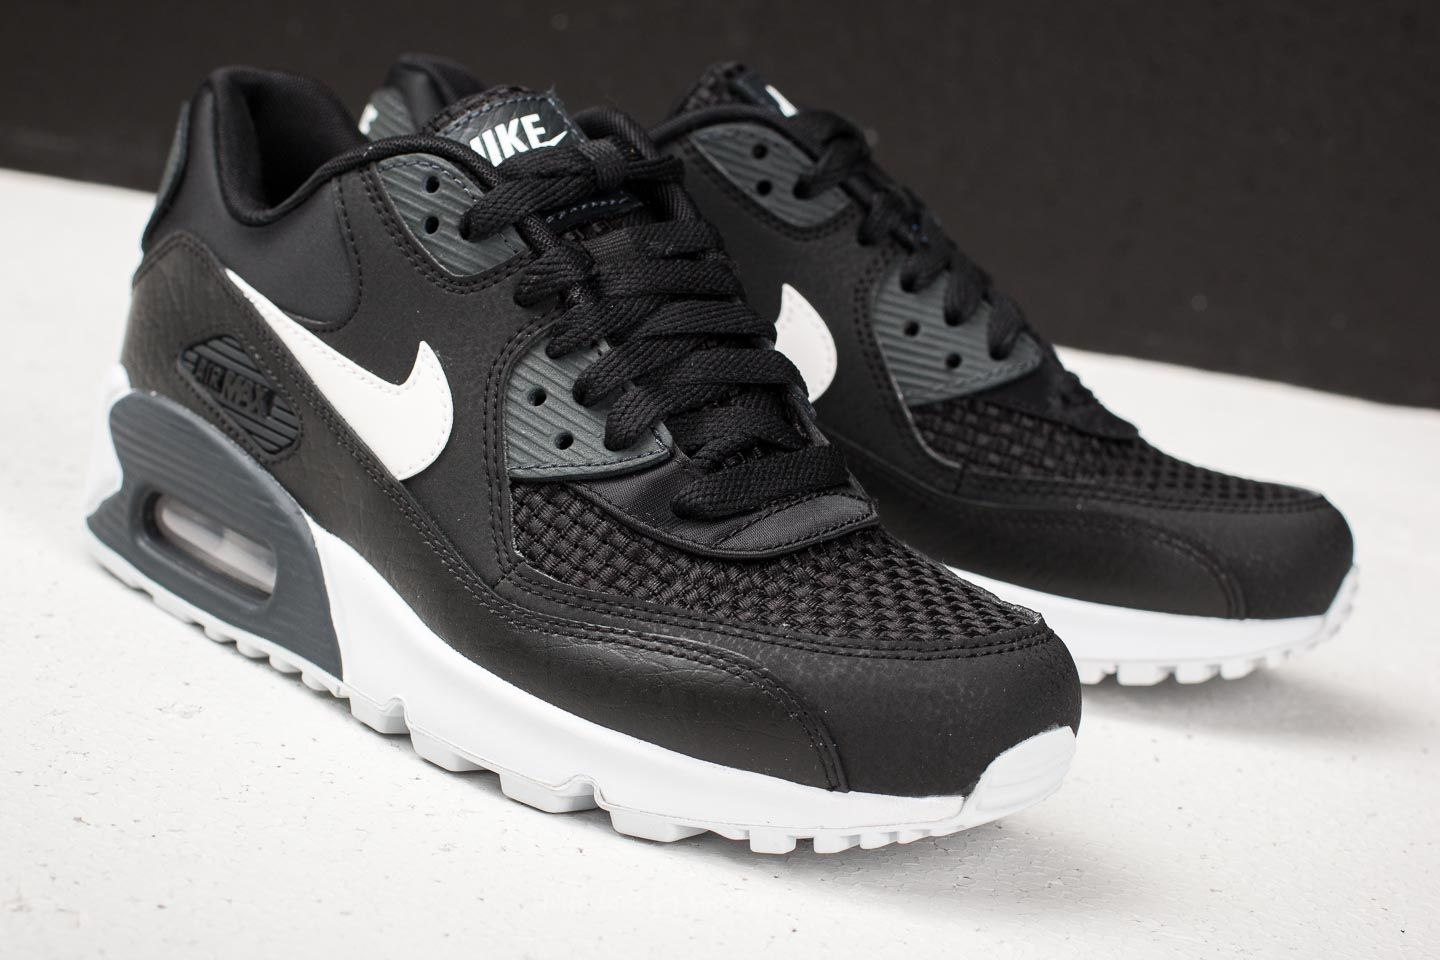 quality design 3ee47 f7155 ... sweden nike wmns air max 90 se black white anthracite at a great price  77cff 0c334